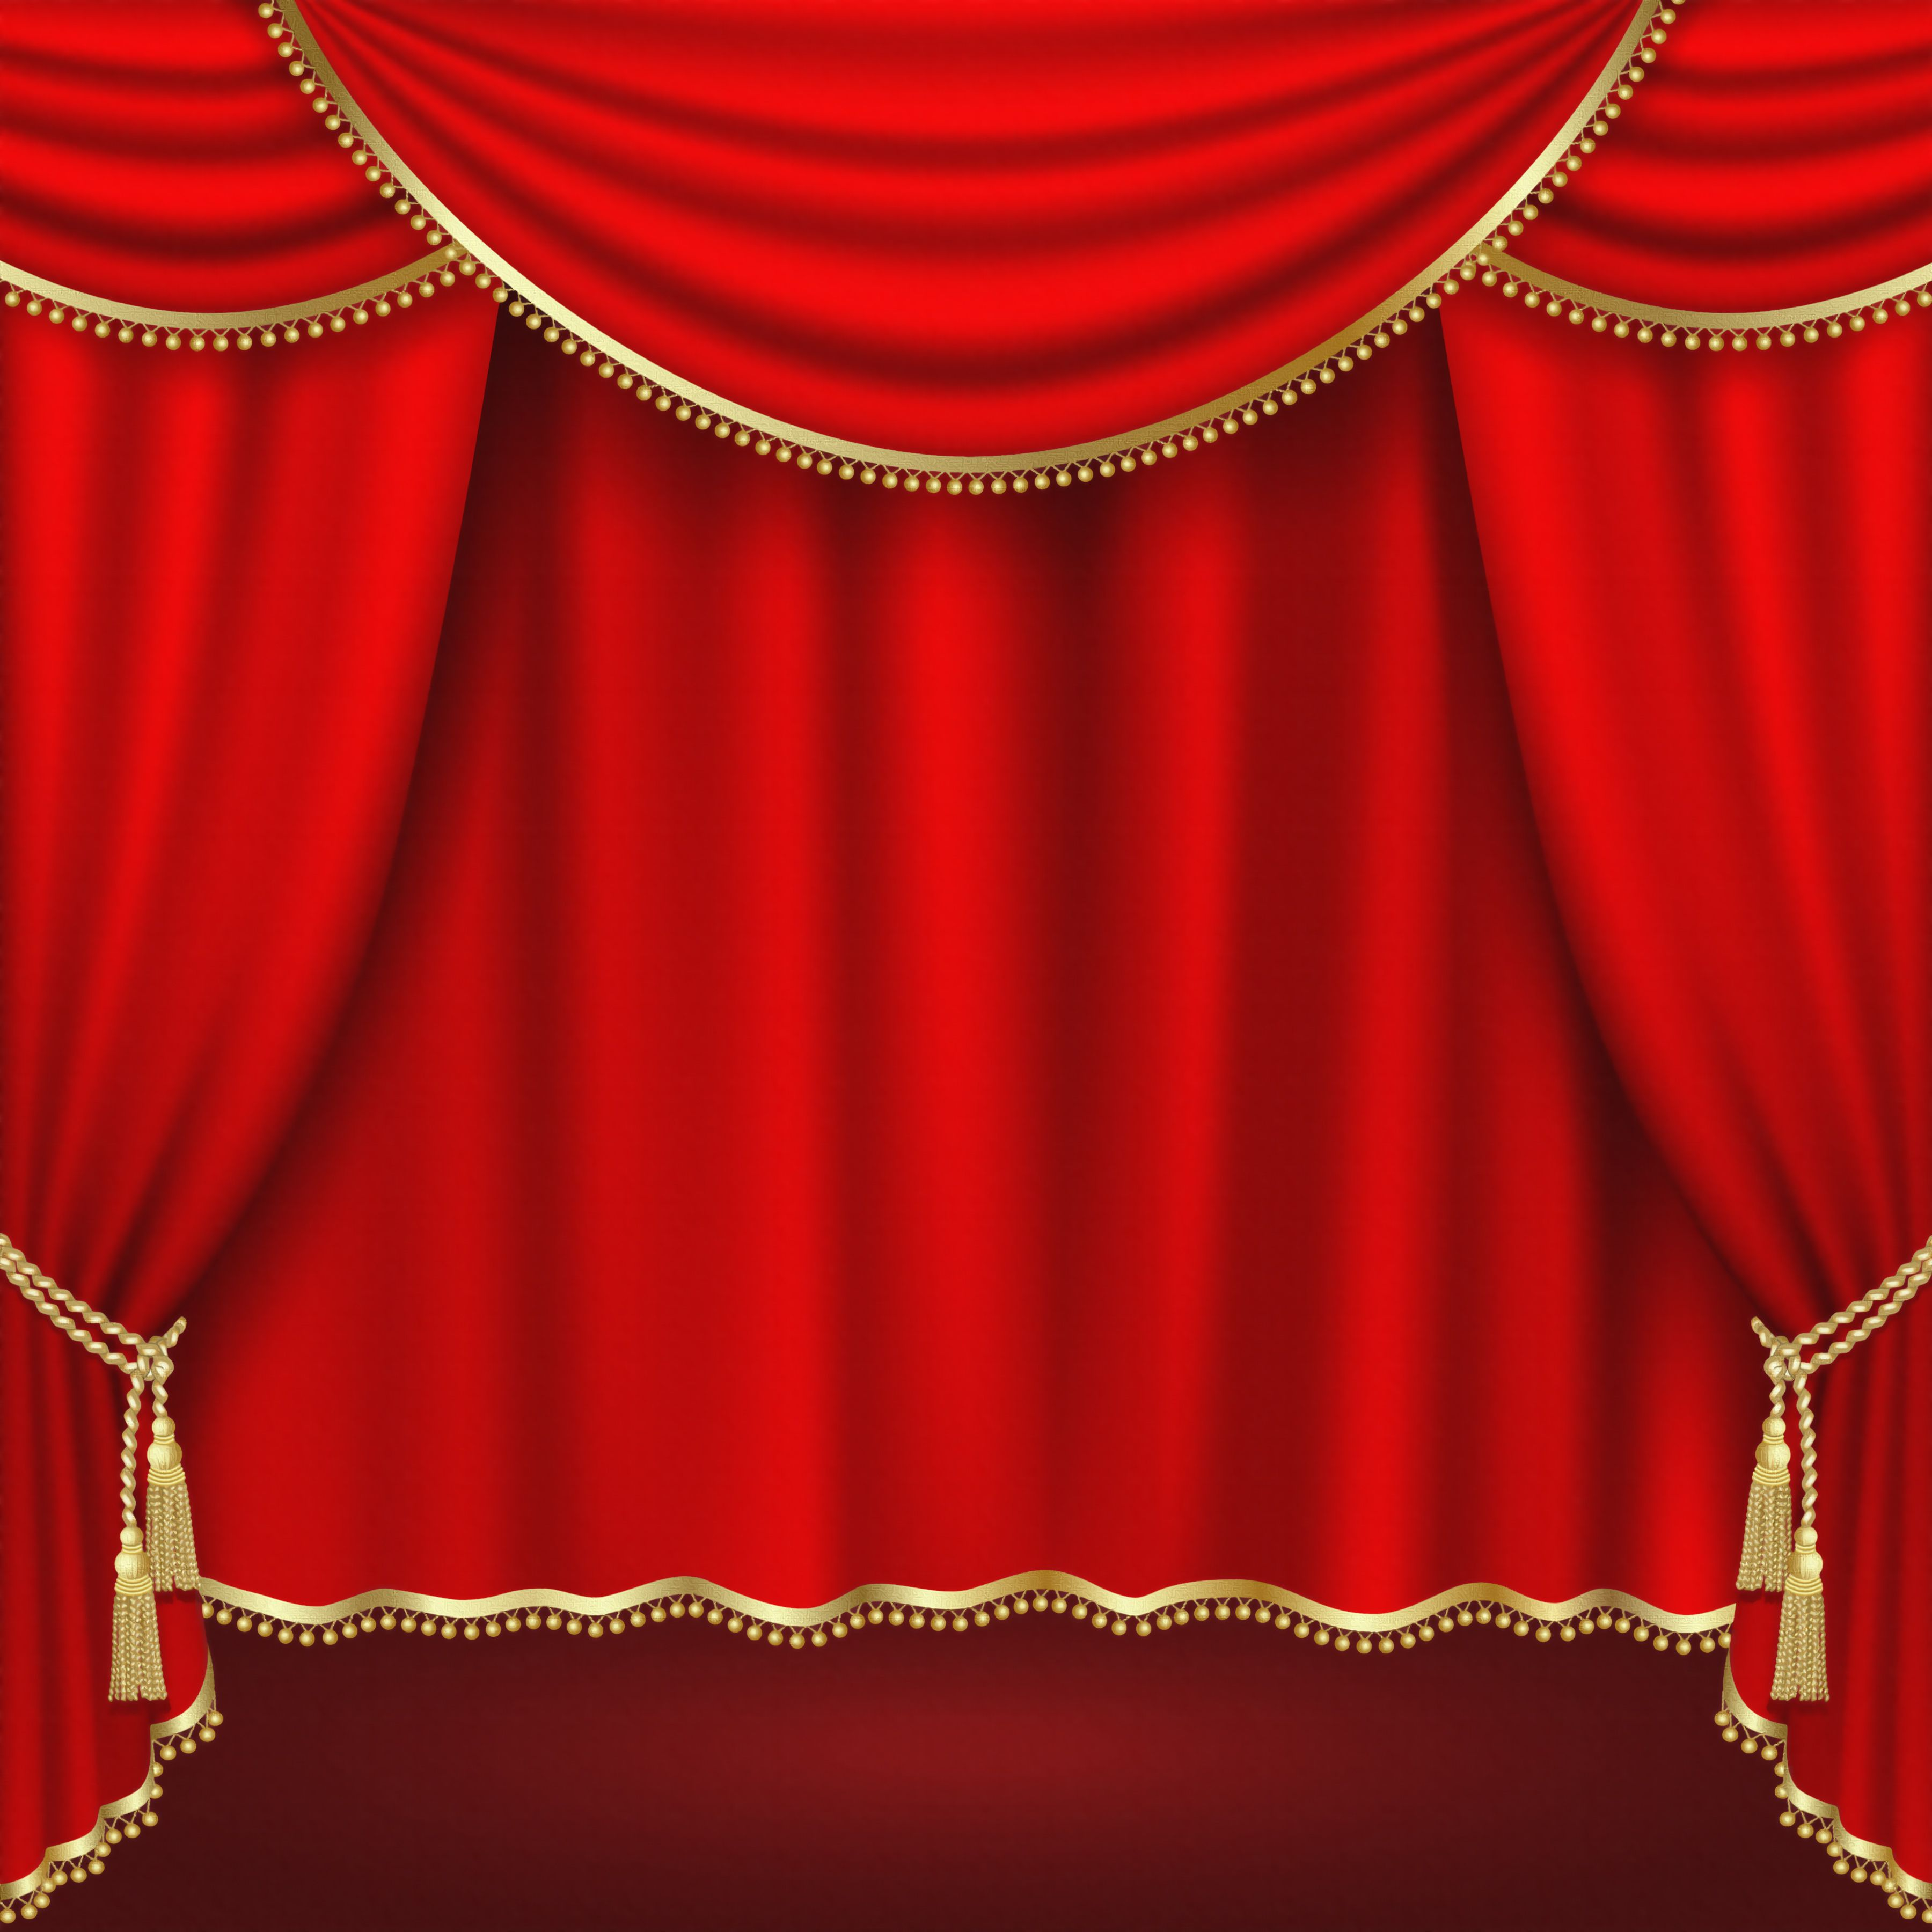 Red curtains background gallery yopriceville high